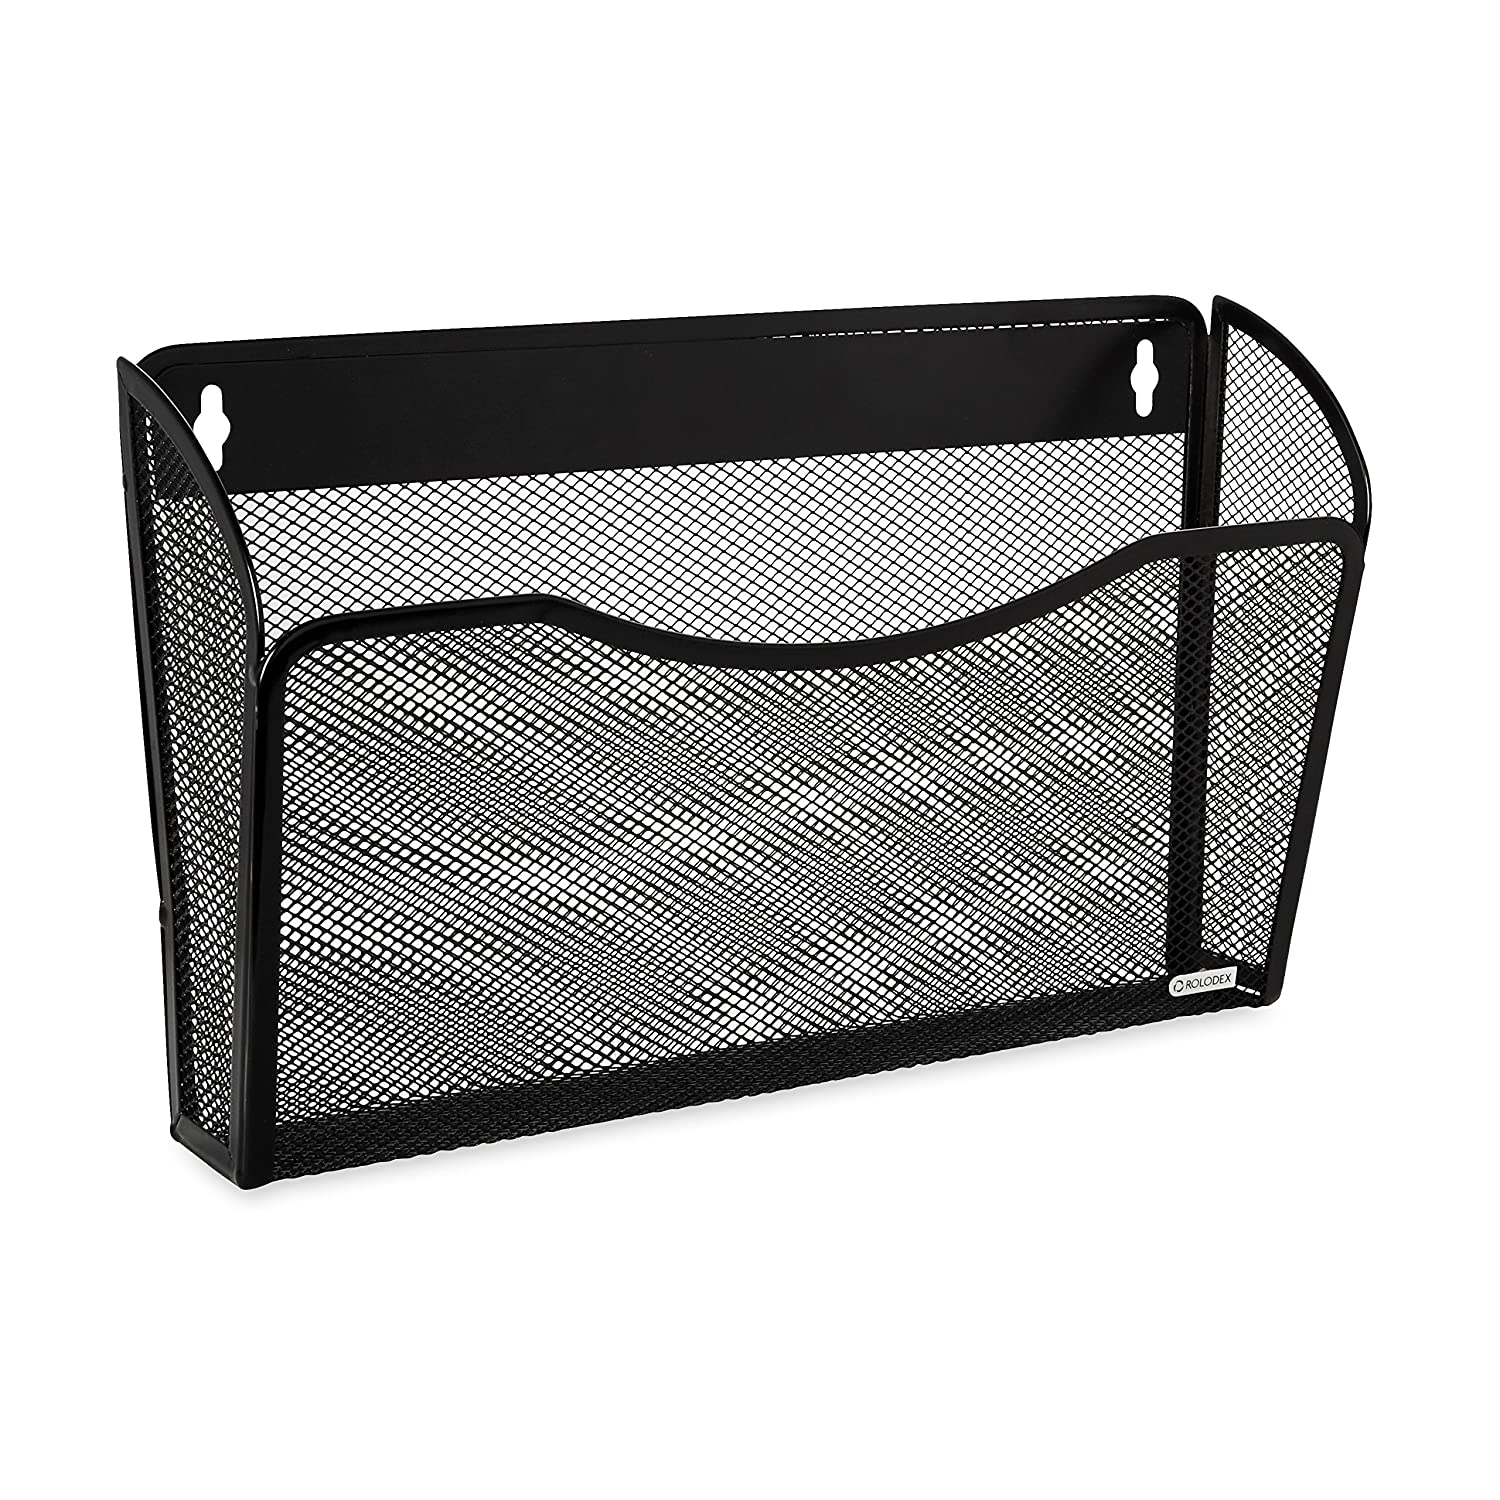 Amazon.com : Rolodex Mesh Collection Single-Pocket Wall File, Black ...